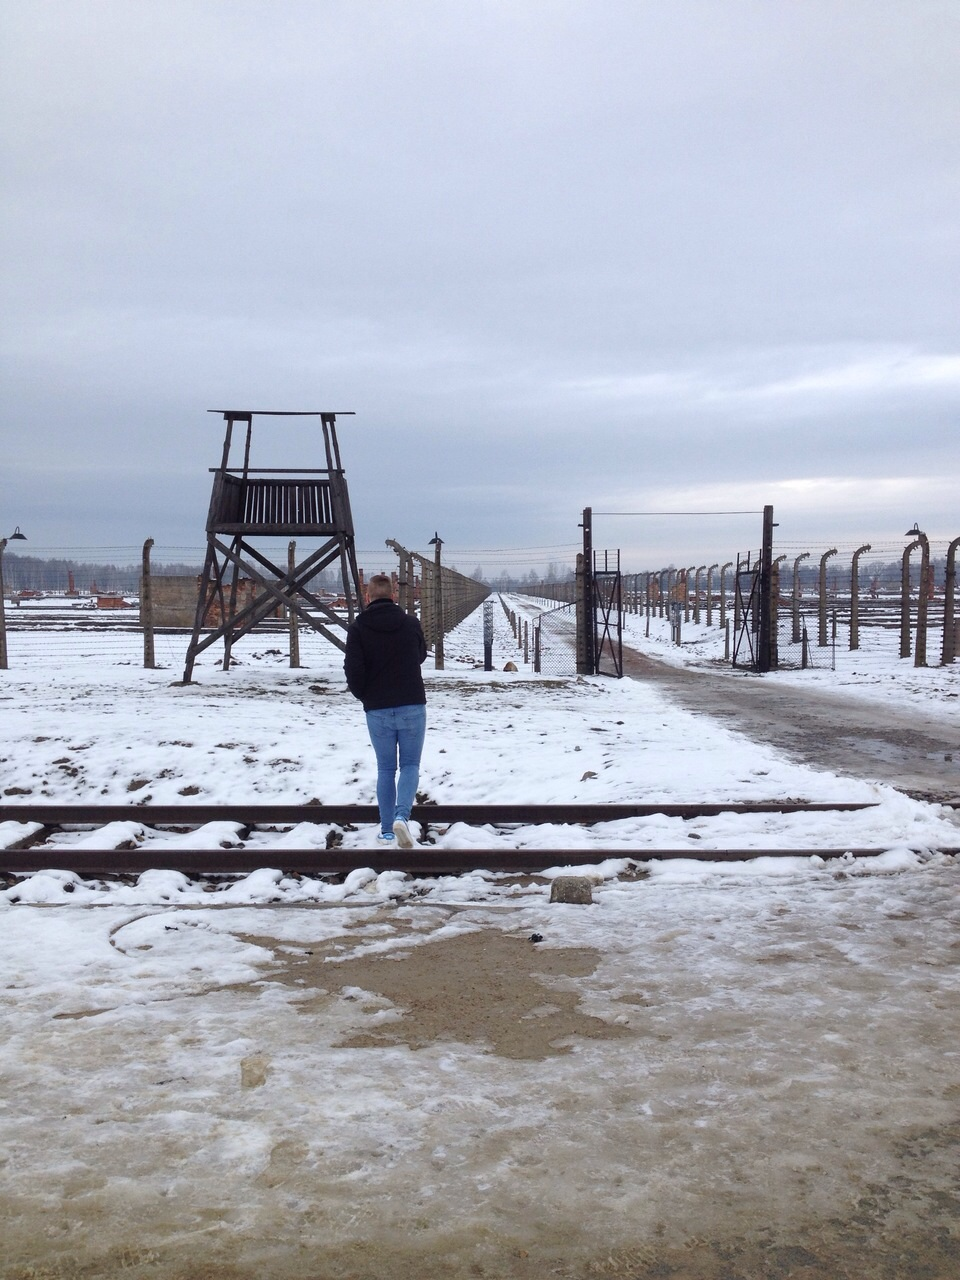 Taking in my surroundings at Auschwitz II-Birkenau.